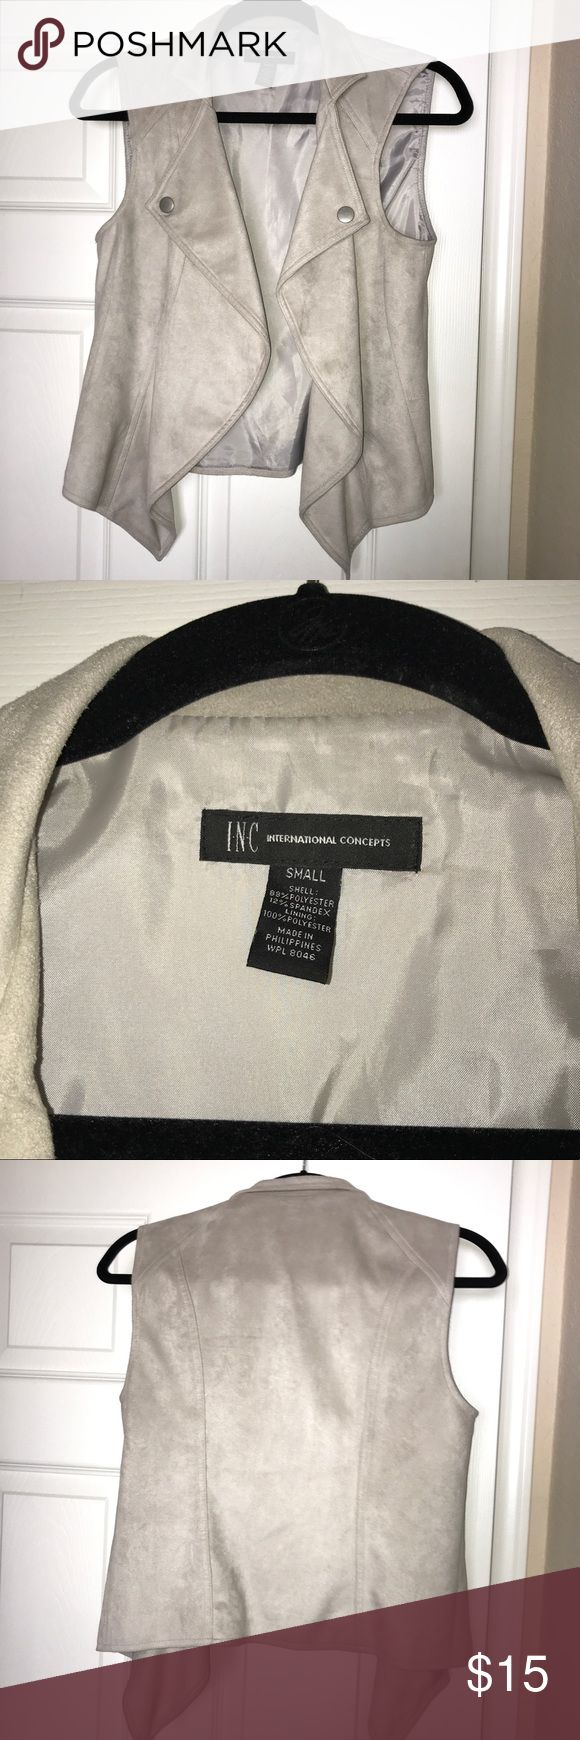 Gray/Silver Vest Great for layering INC International Concepts Jackets & Coats Vests